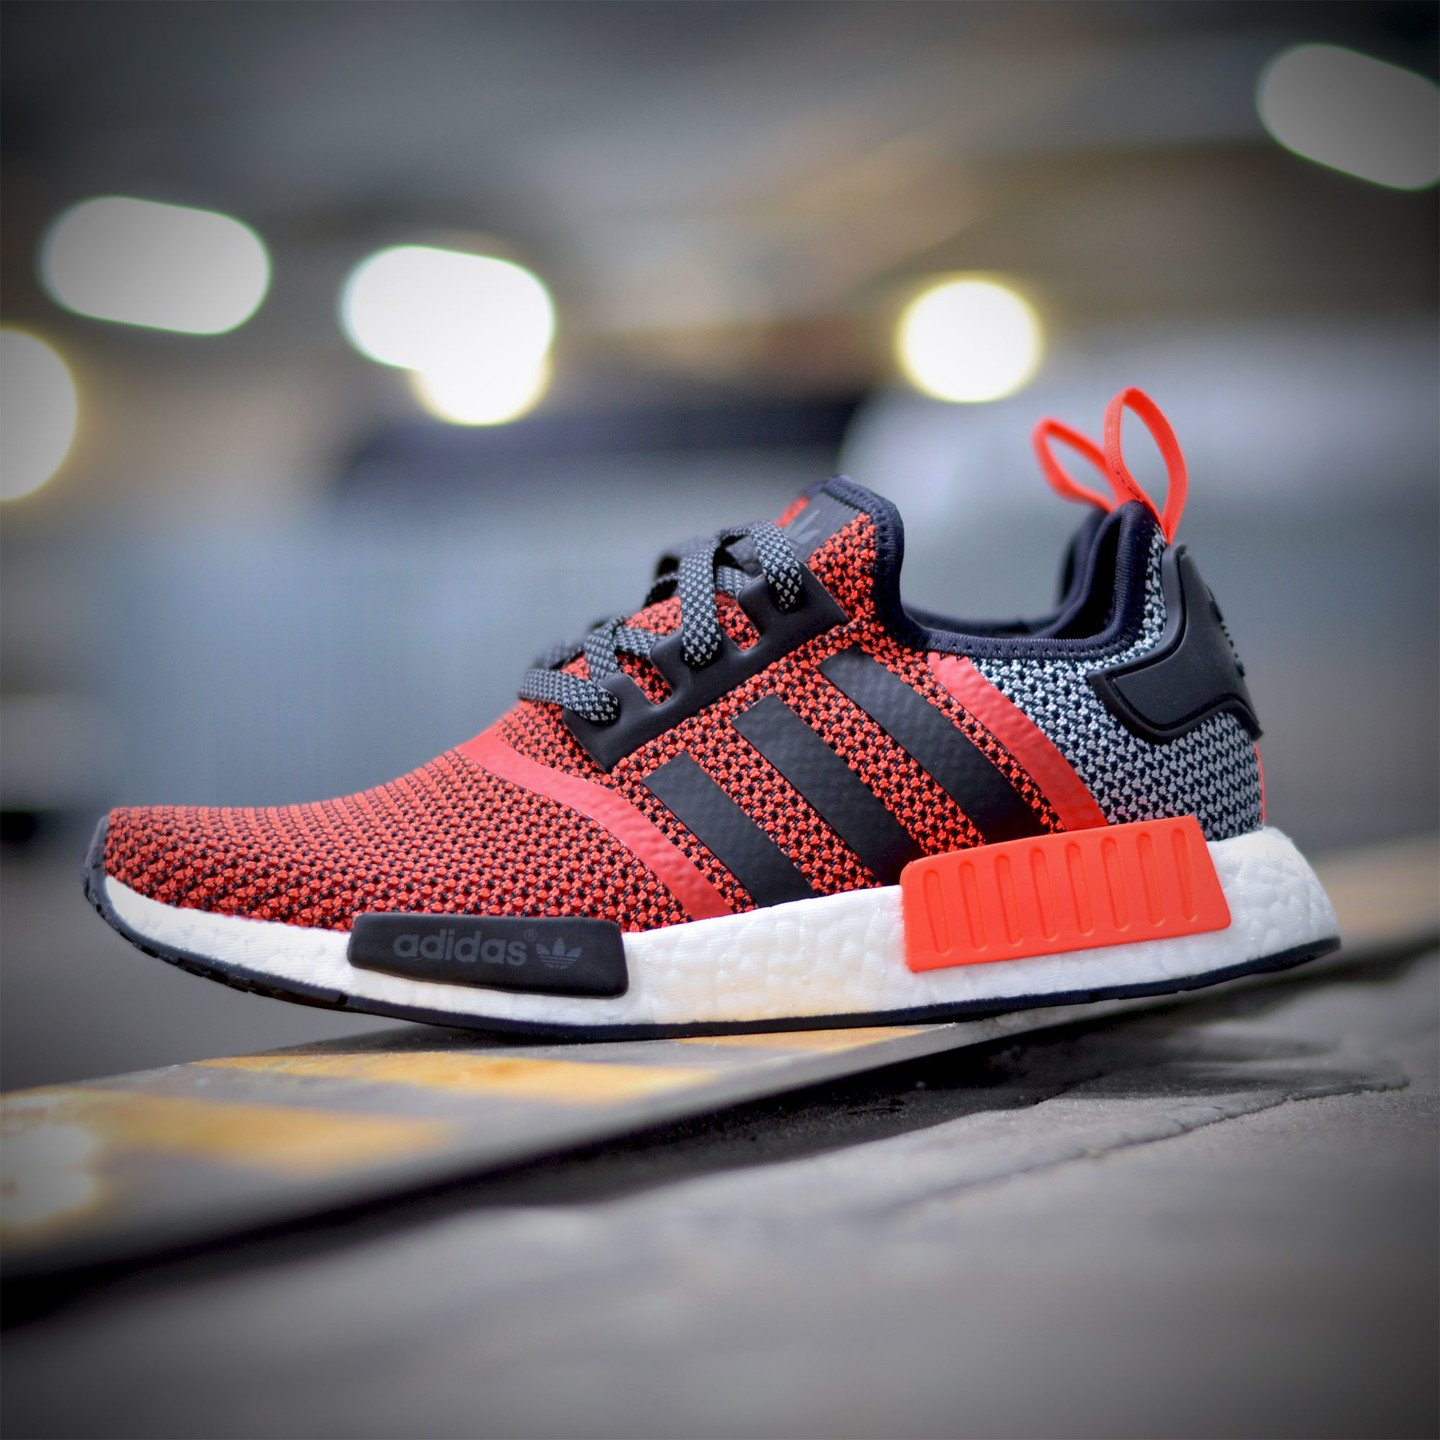 Adidas NMD R1 Runner Lush Red / Core Black S79158-40.66